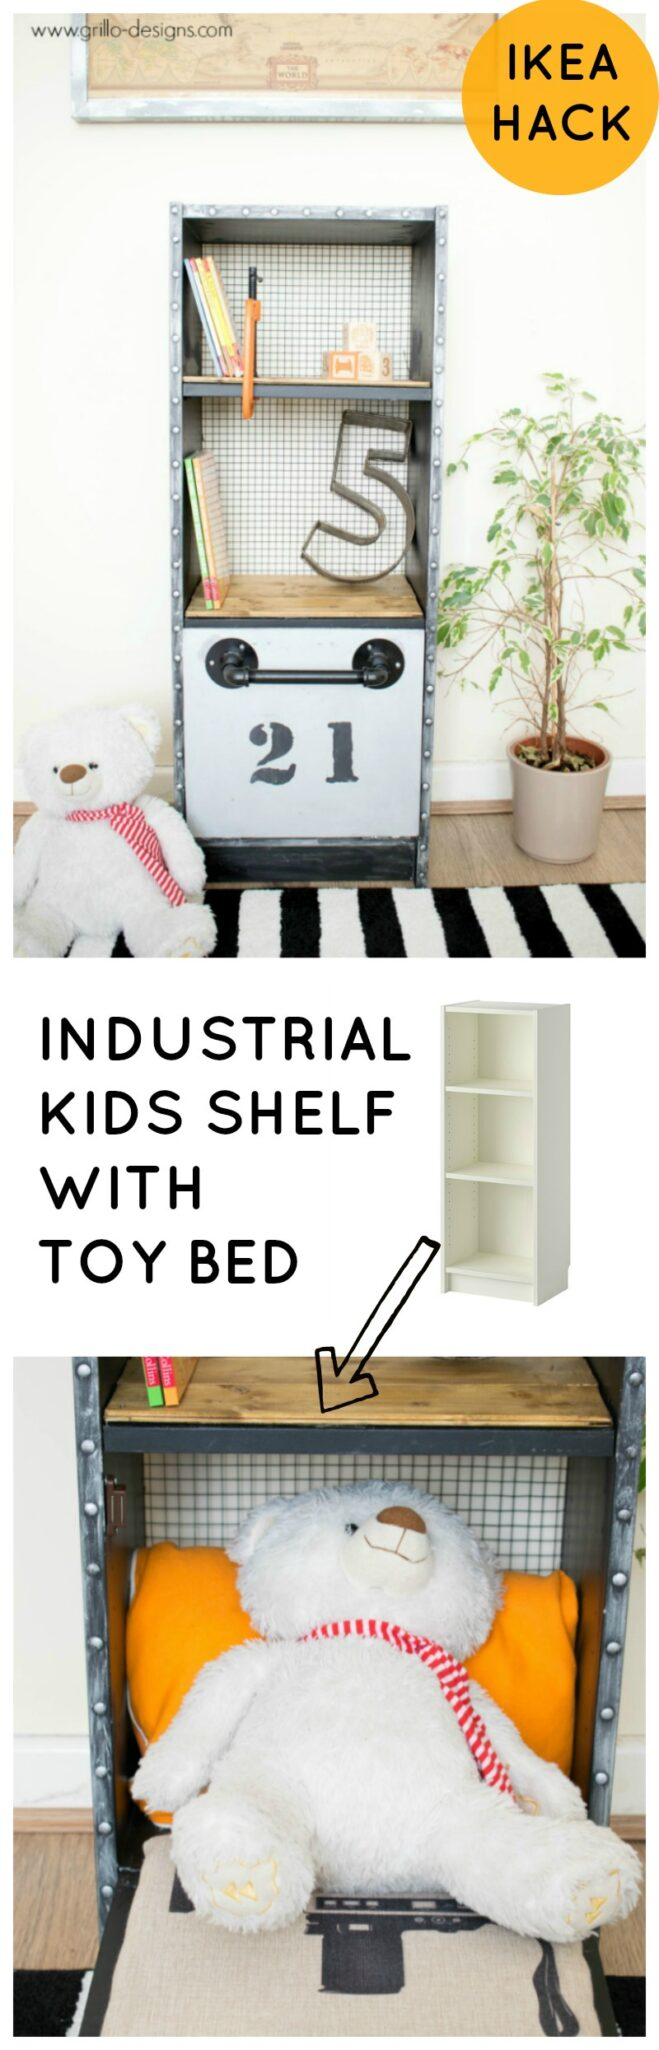 IKEA INDUSTRIAL KIDS SHELF WITH TOY BED